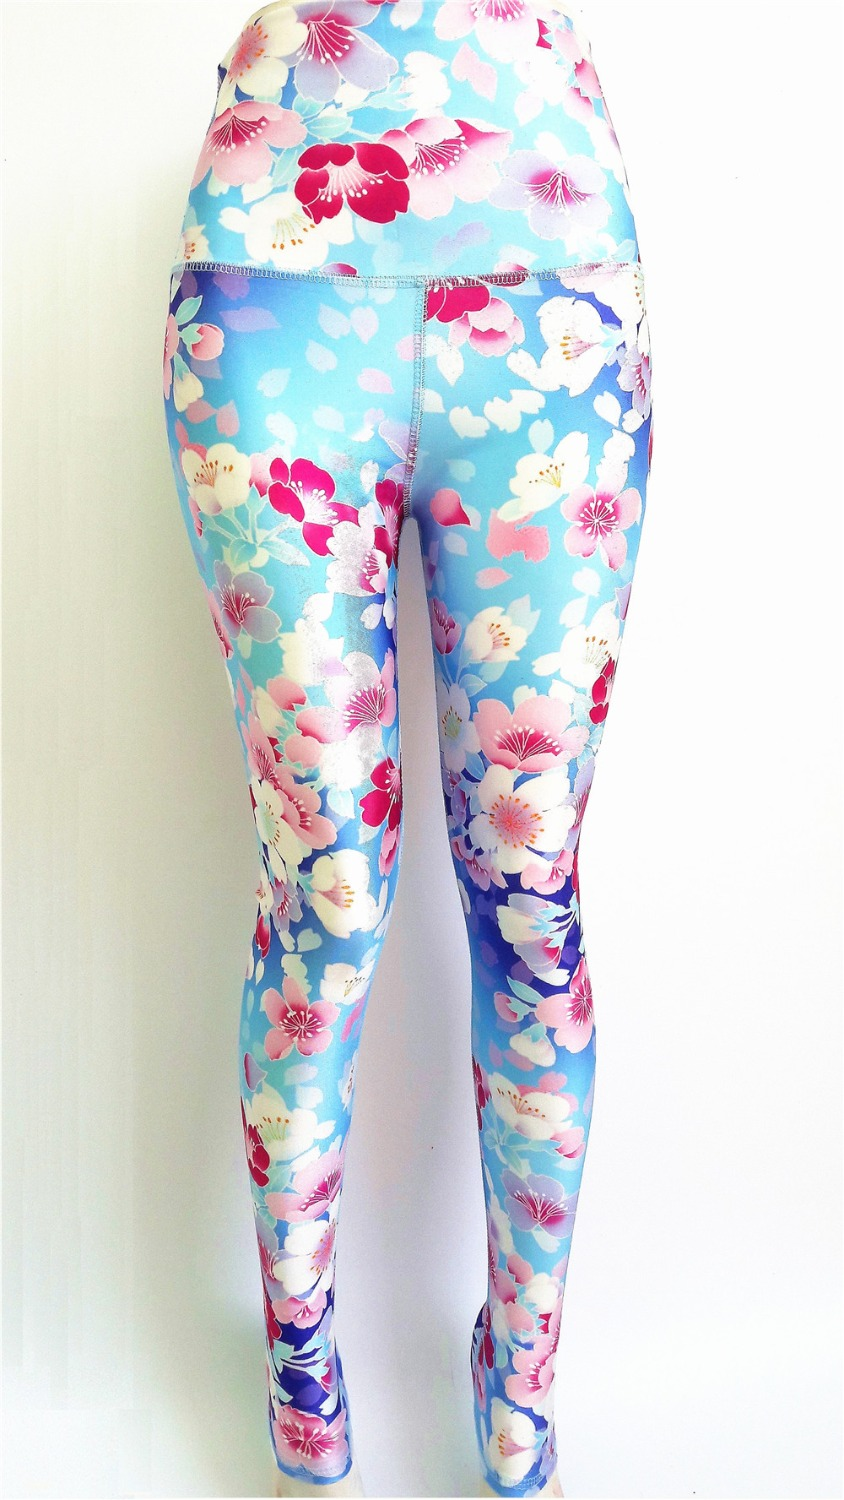 Plus Size Yoga Pants Lotus Flower Elephant Stripe Design Running